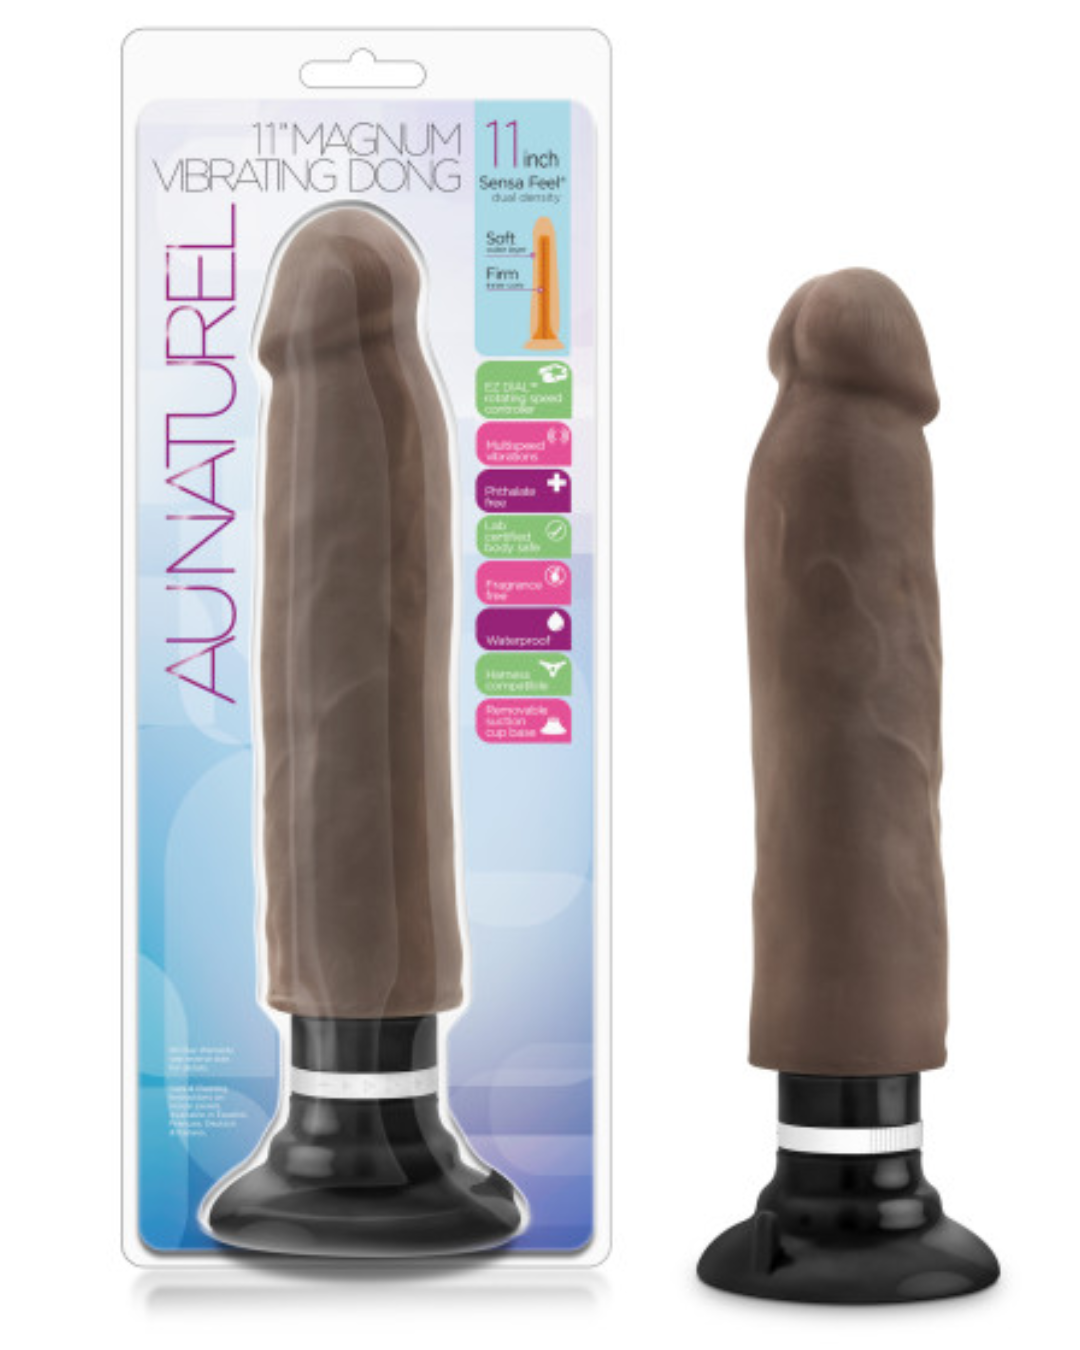 Au Naturel Magnum Sensa Feel Vibrating Dildo by Blush - Chocolate with package